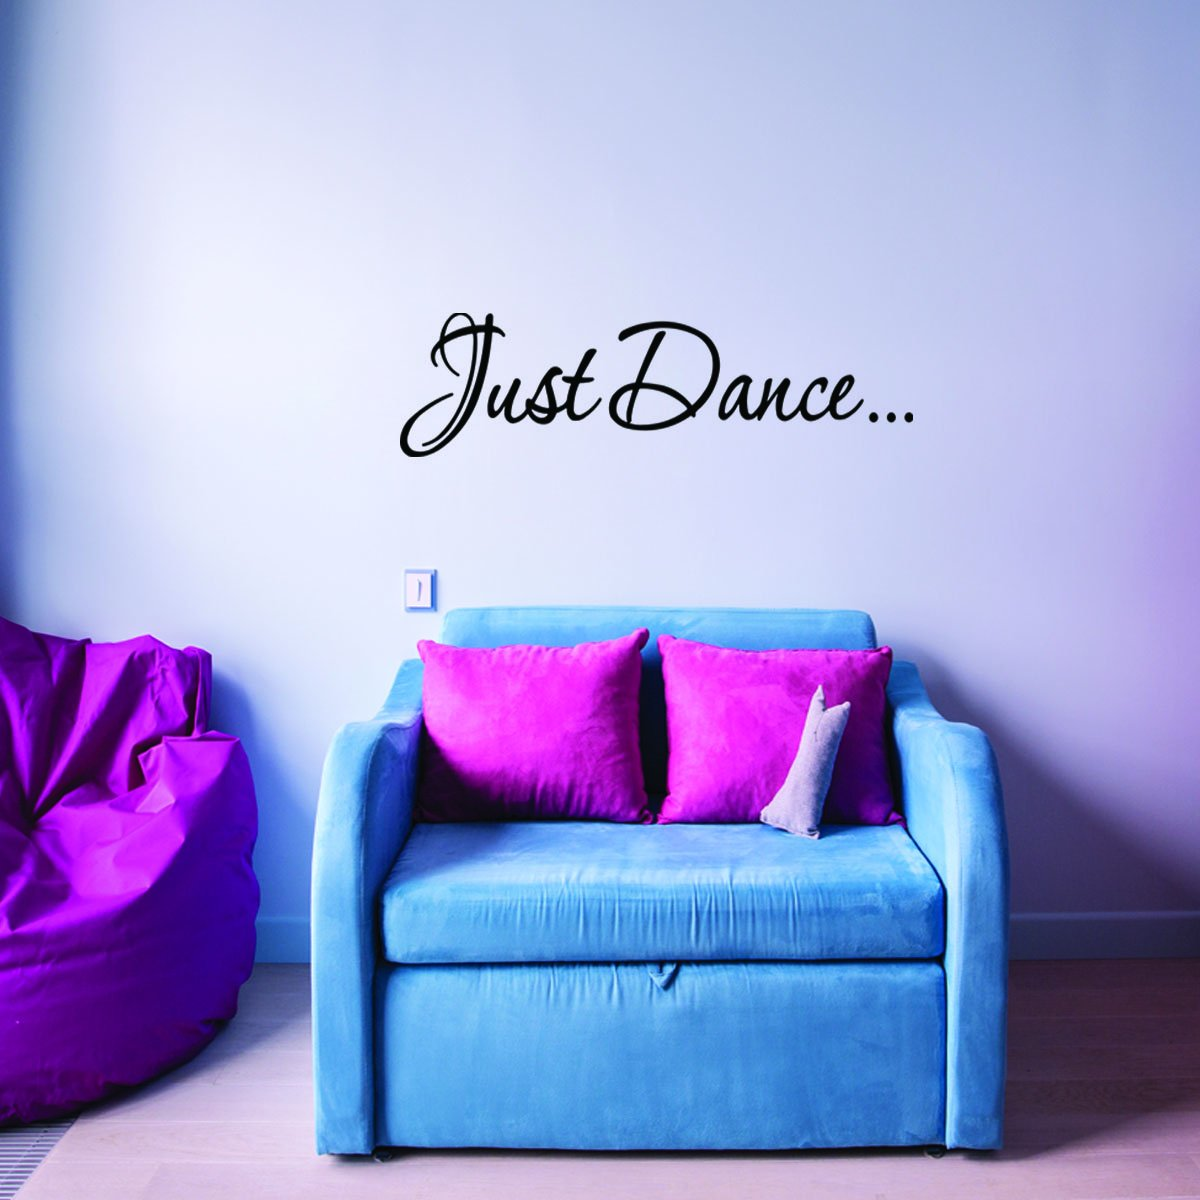 VWAQ Just Dance Vinyl Wall Decal - VWAQ Vinyl Wall Art Quotes and Prints